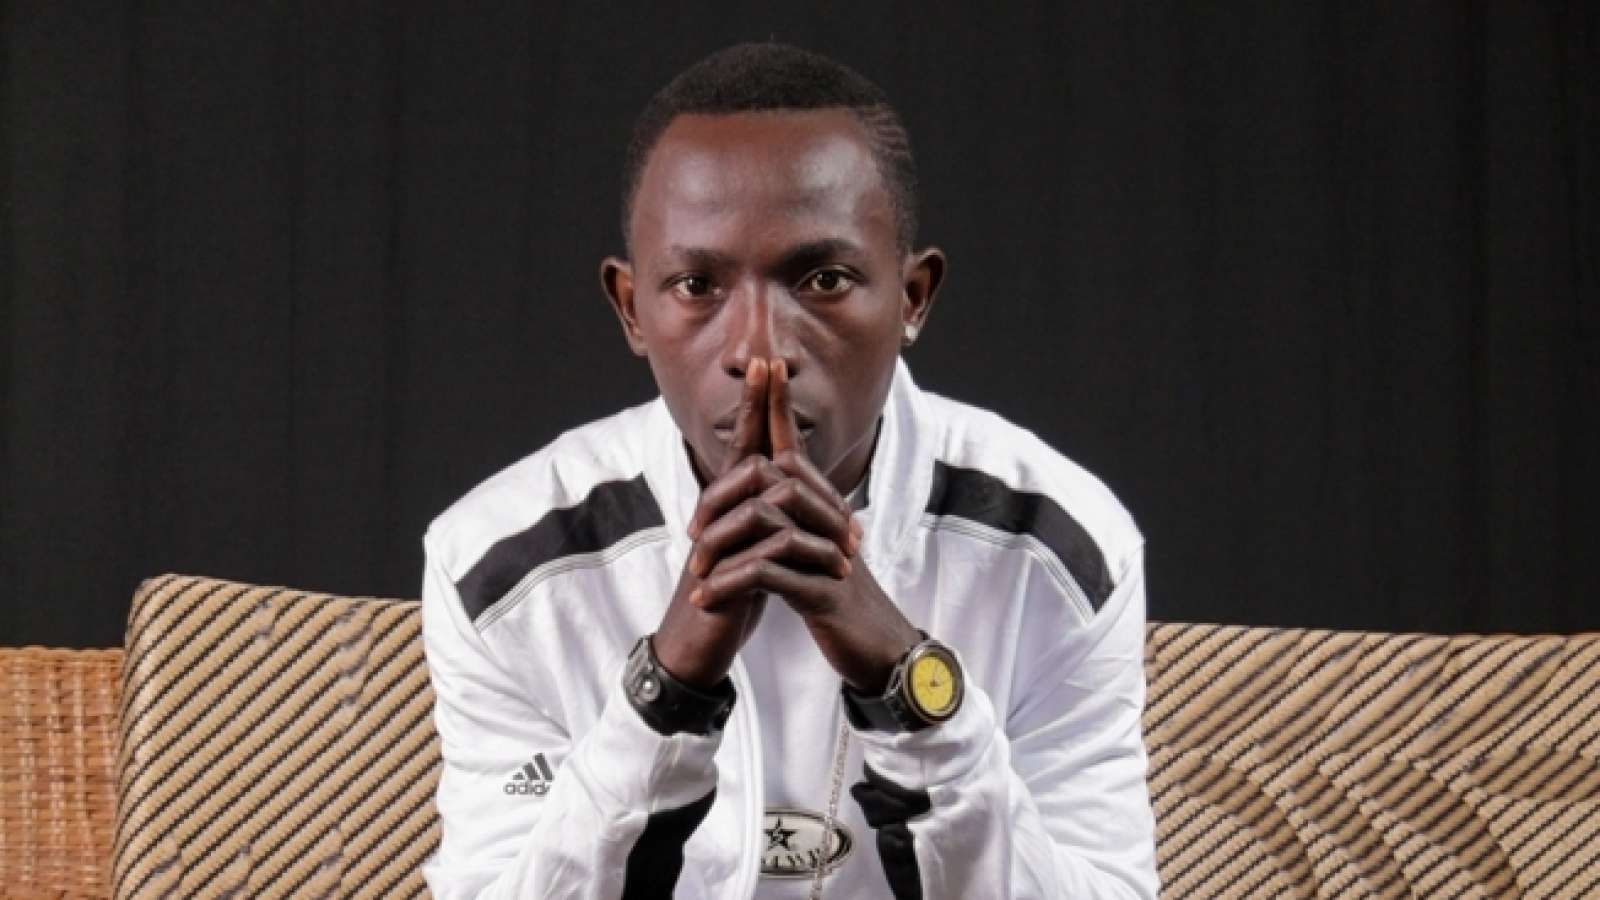 I was sad and disappointed and said things without meaning them. - Patapaa to Charter House